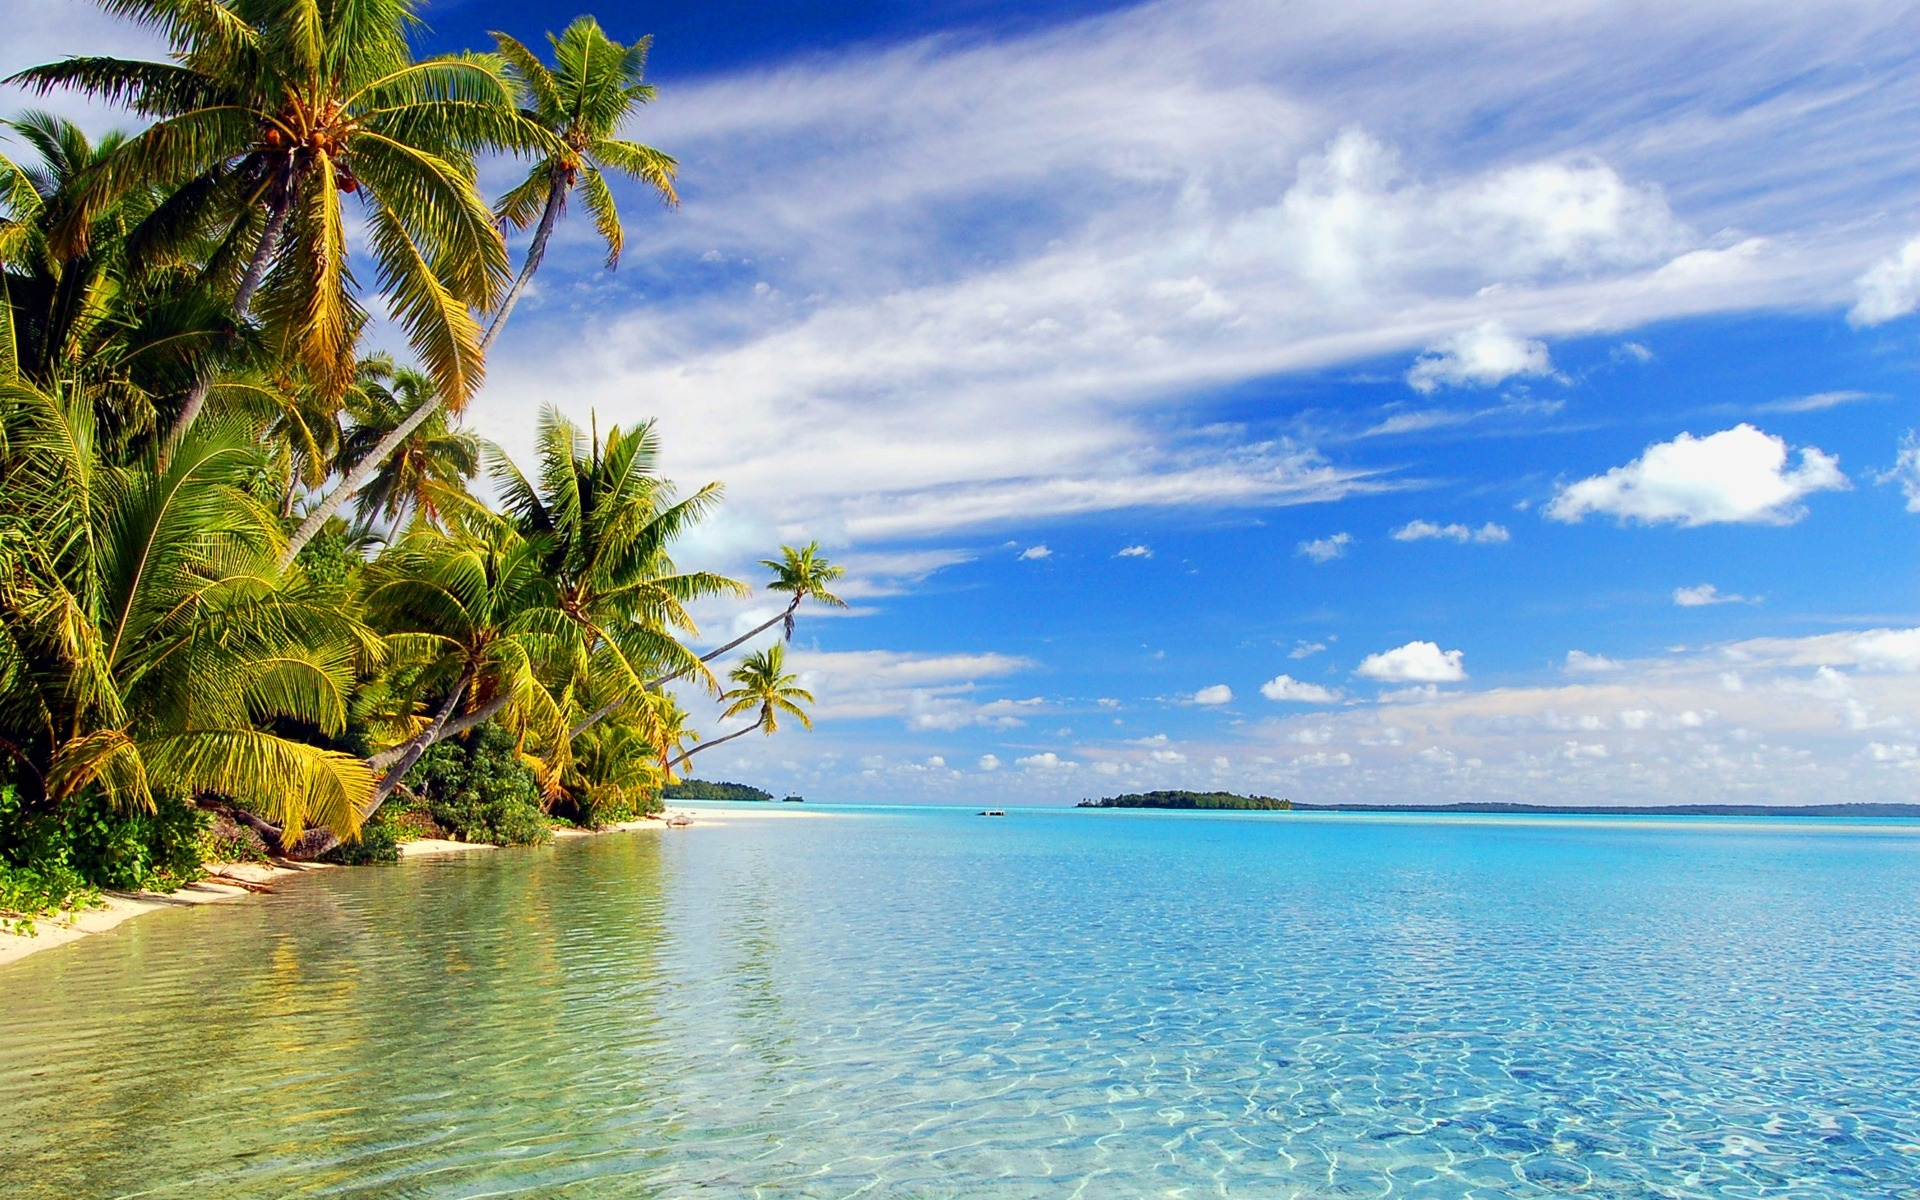 Download Hd Tropical Island Beach Paradise Wallpapers And